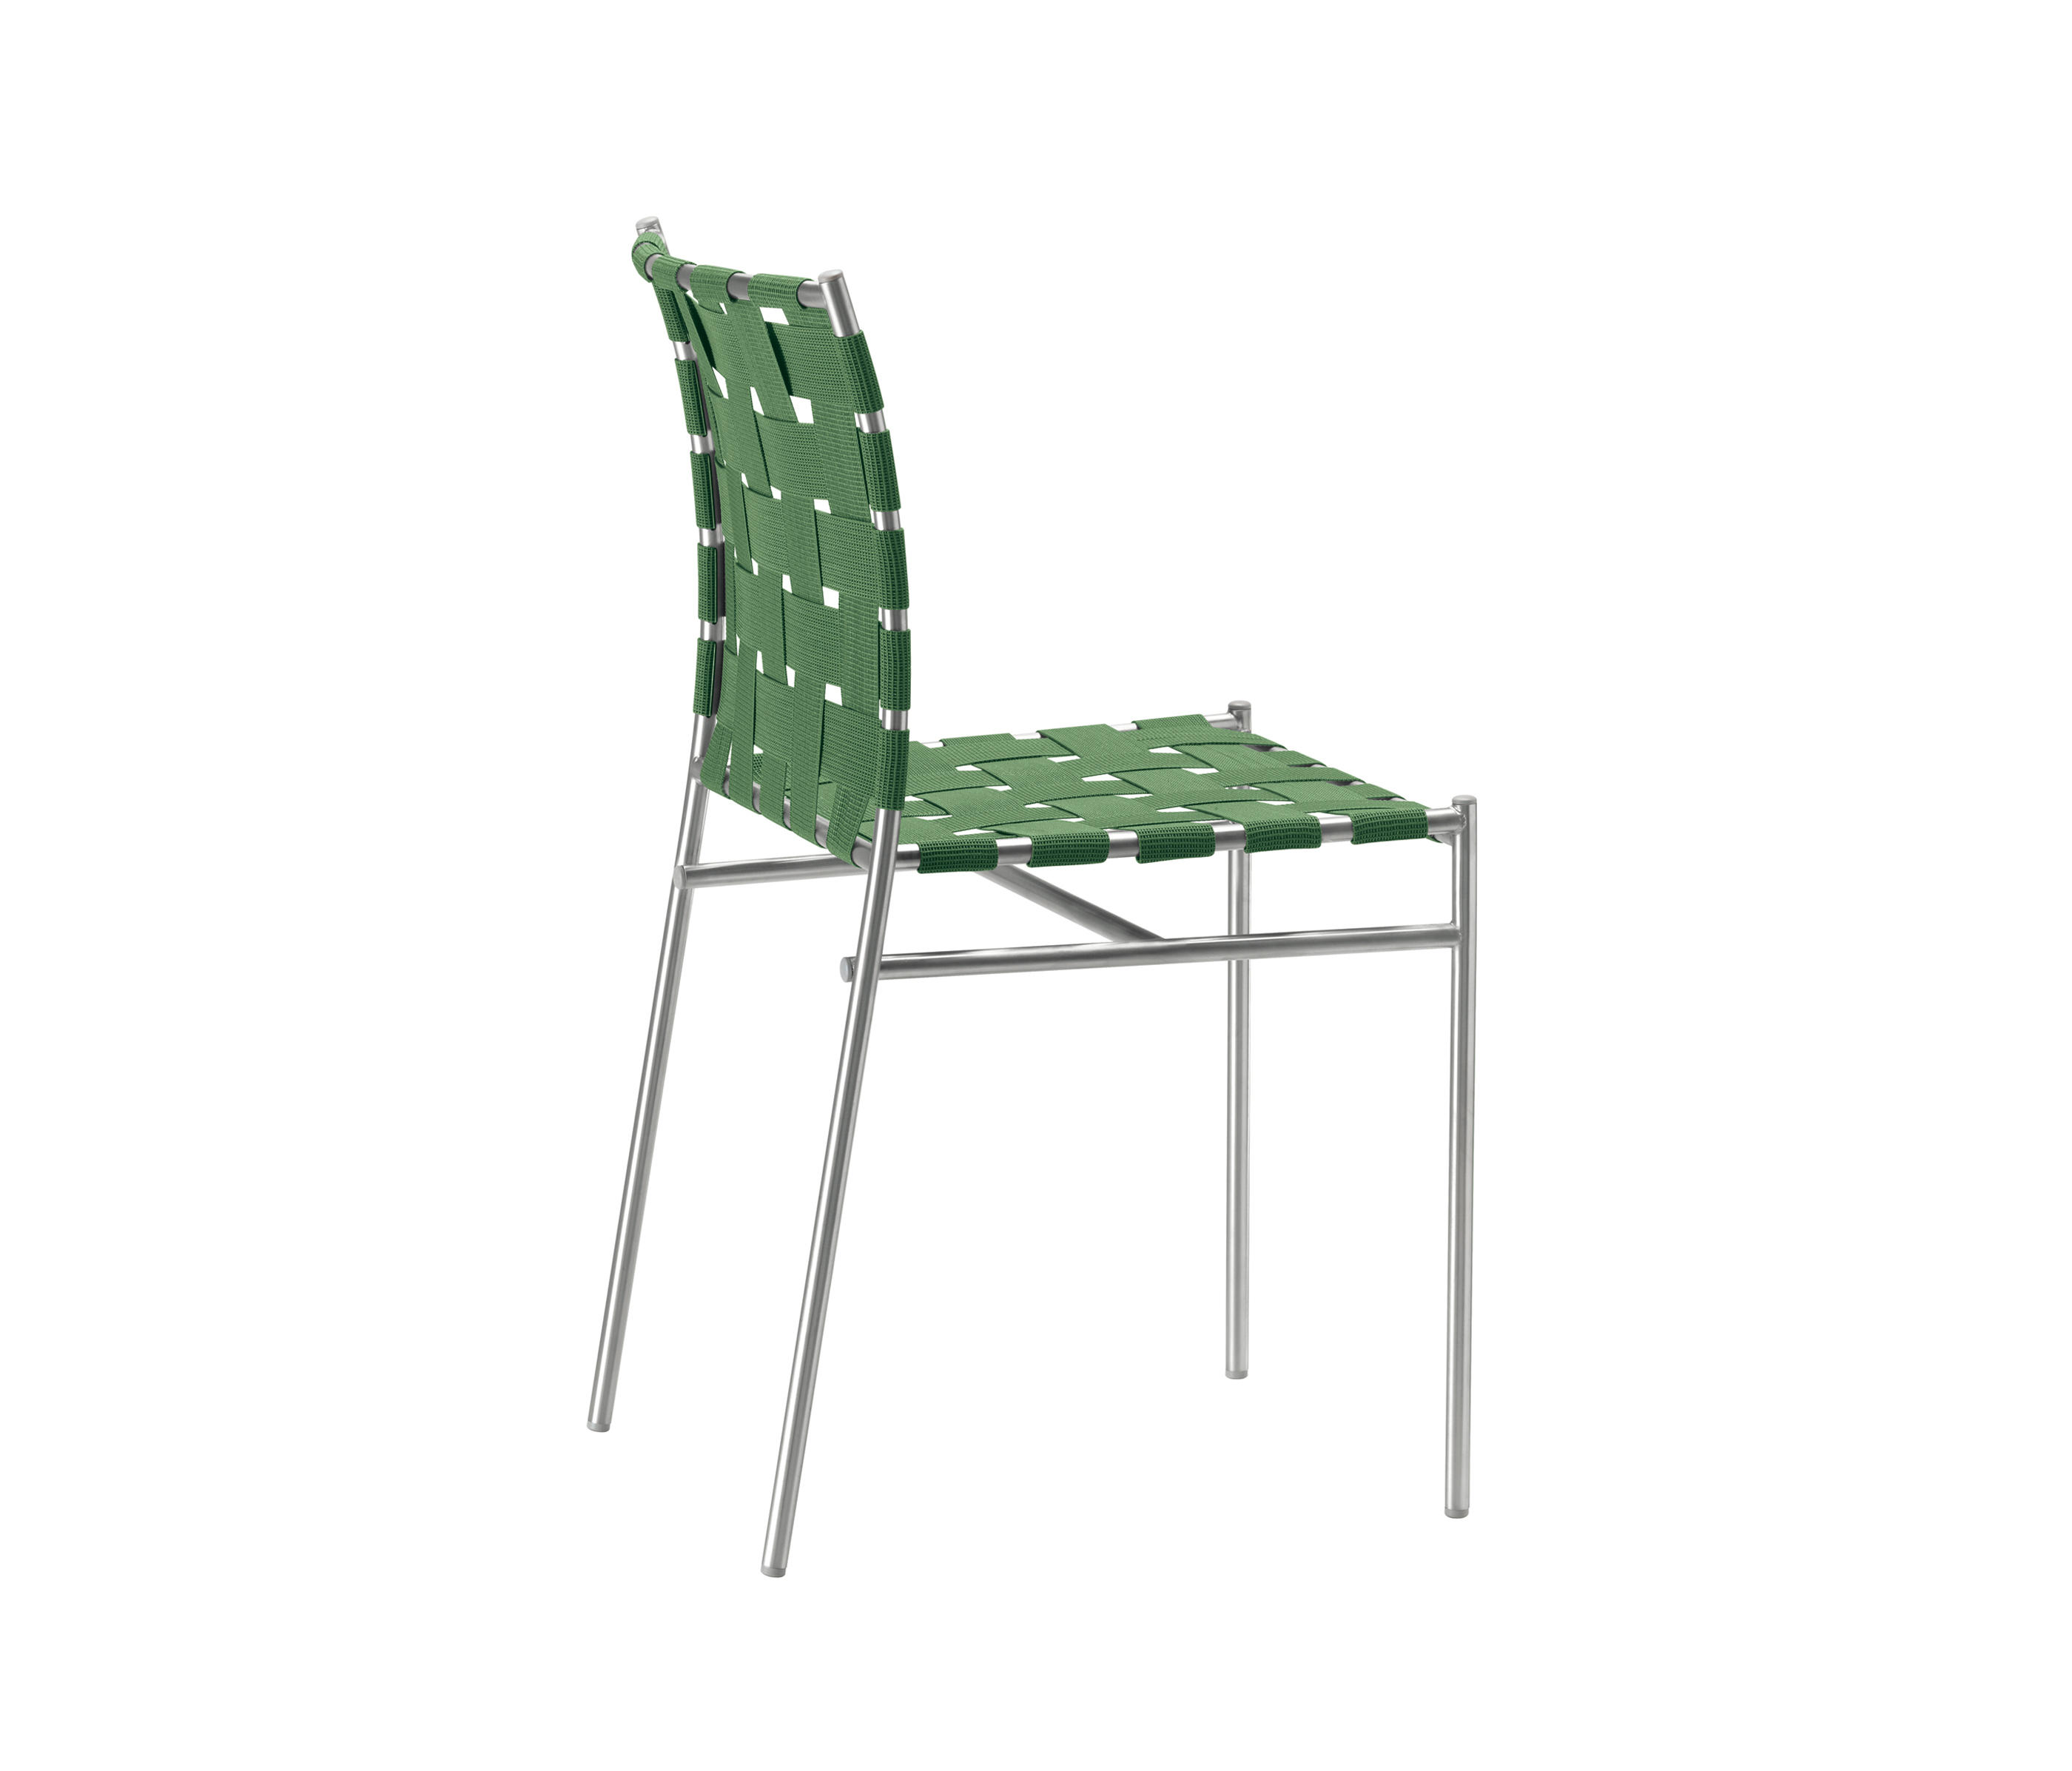 TAGLIATELLE OUTDOOR CHAIR 715 Multipurpose chairs from Alias